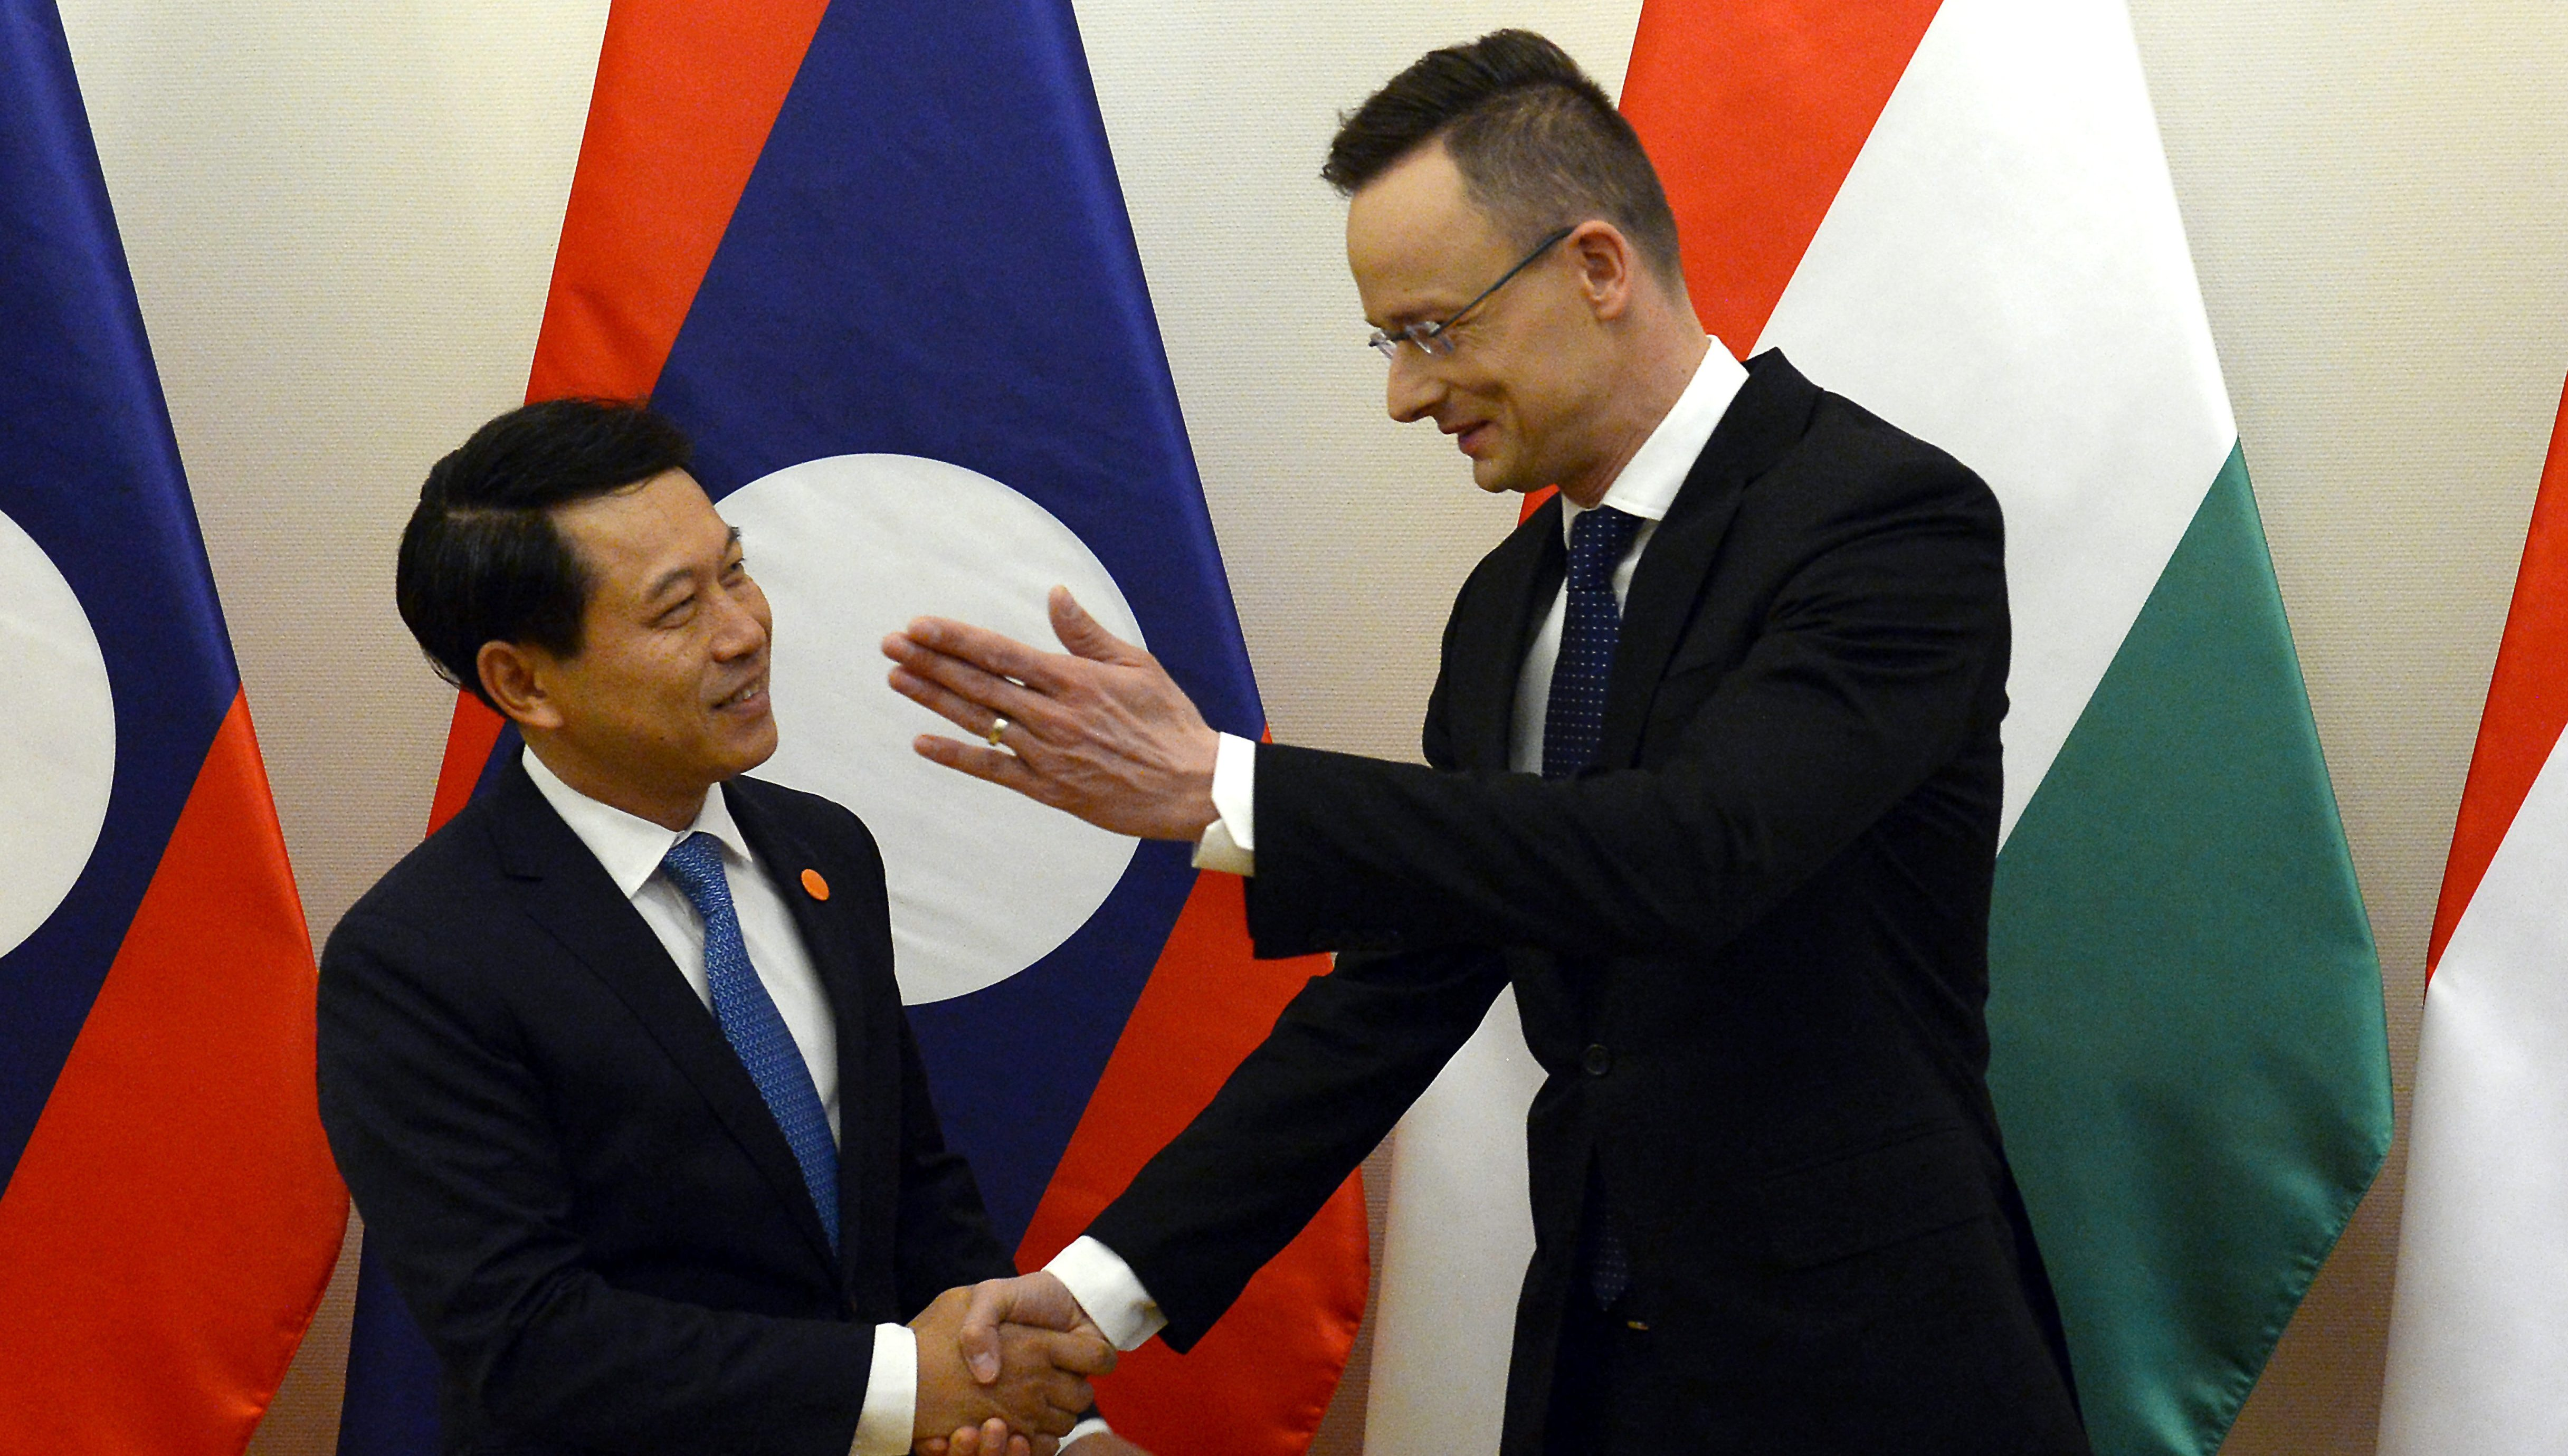 Hungary Laos foreign ministers